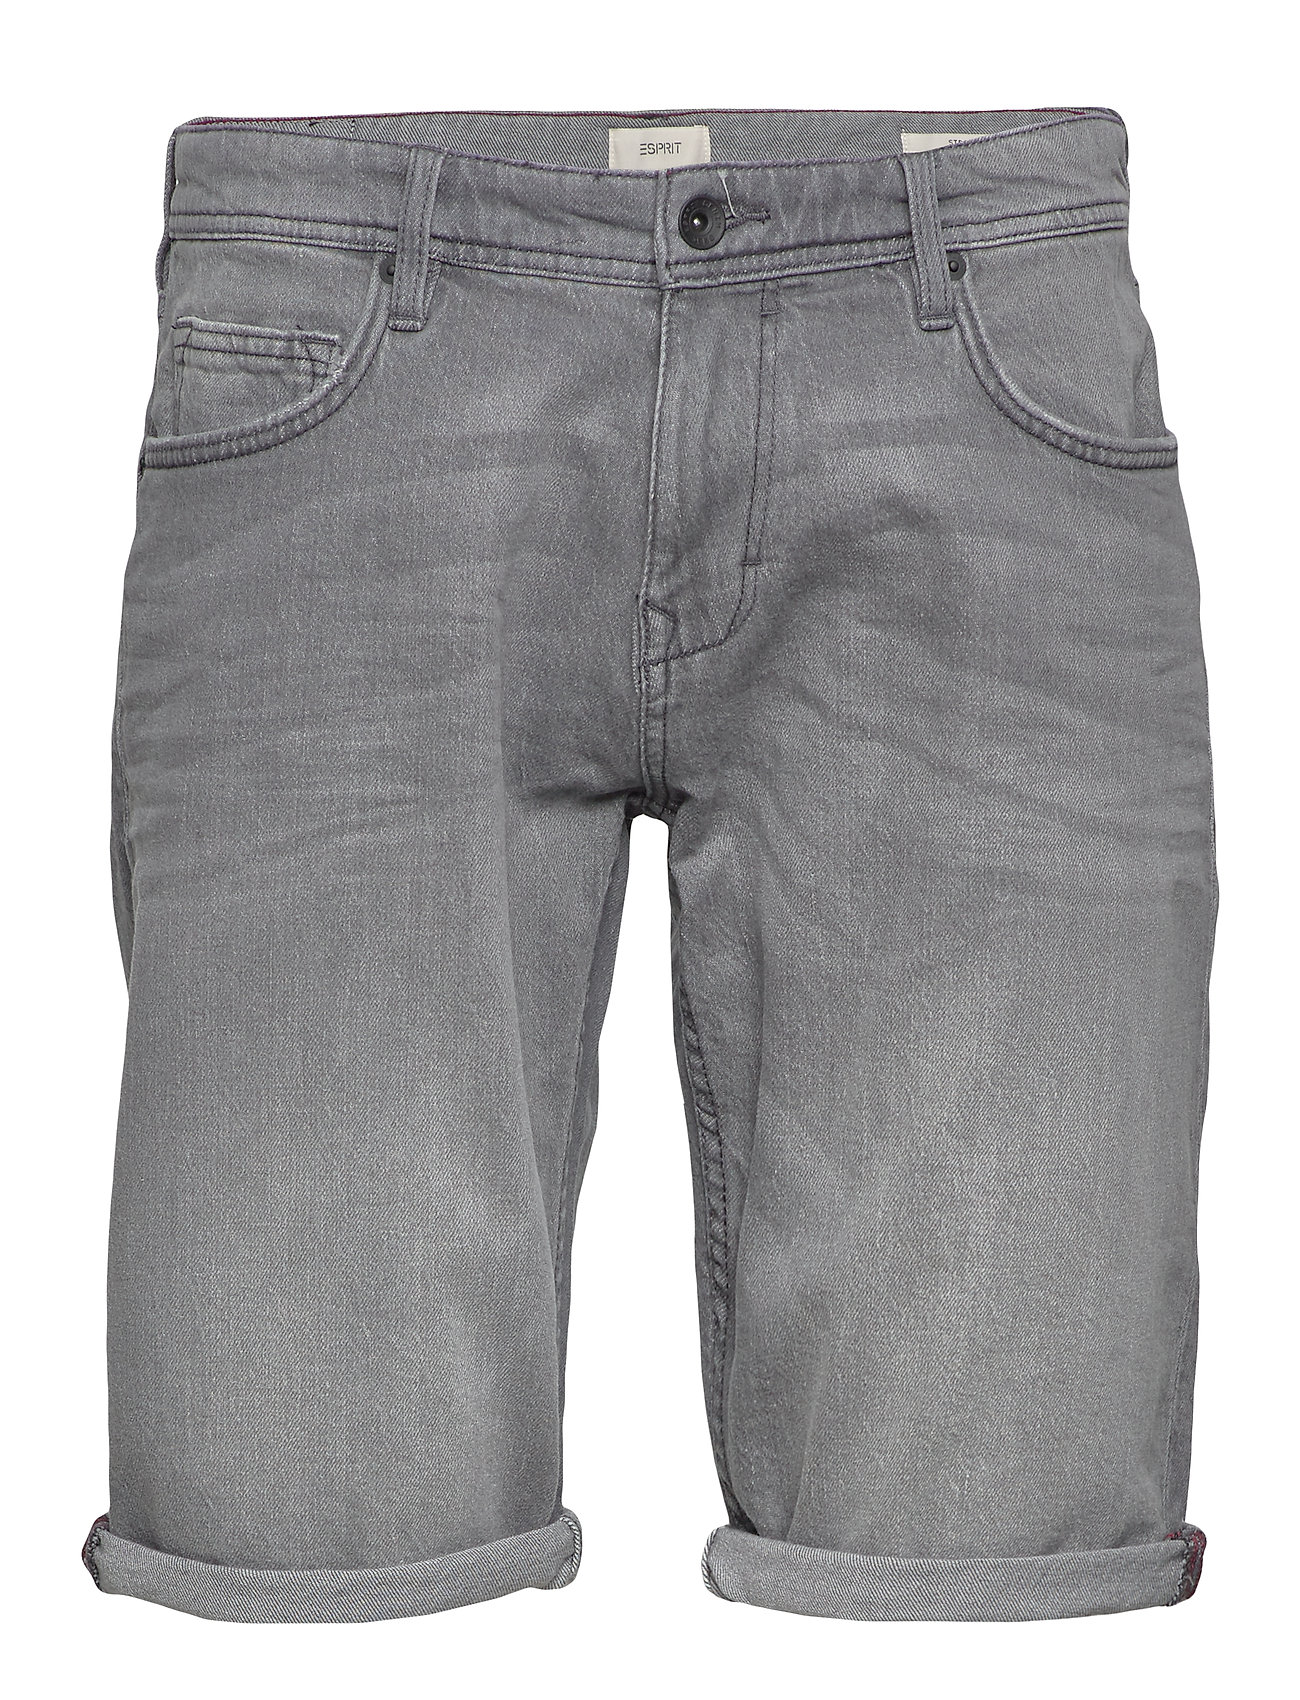 Esprit Casual Shorts denim - GREY LIGHT WASH